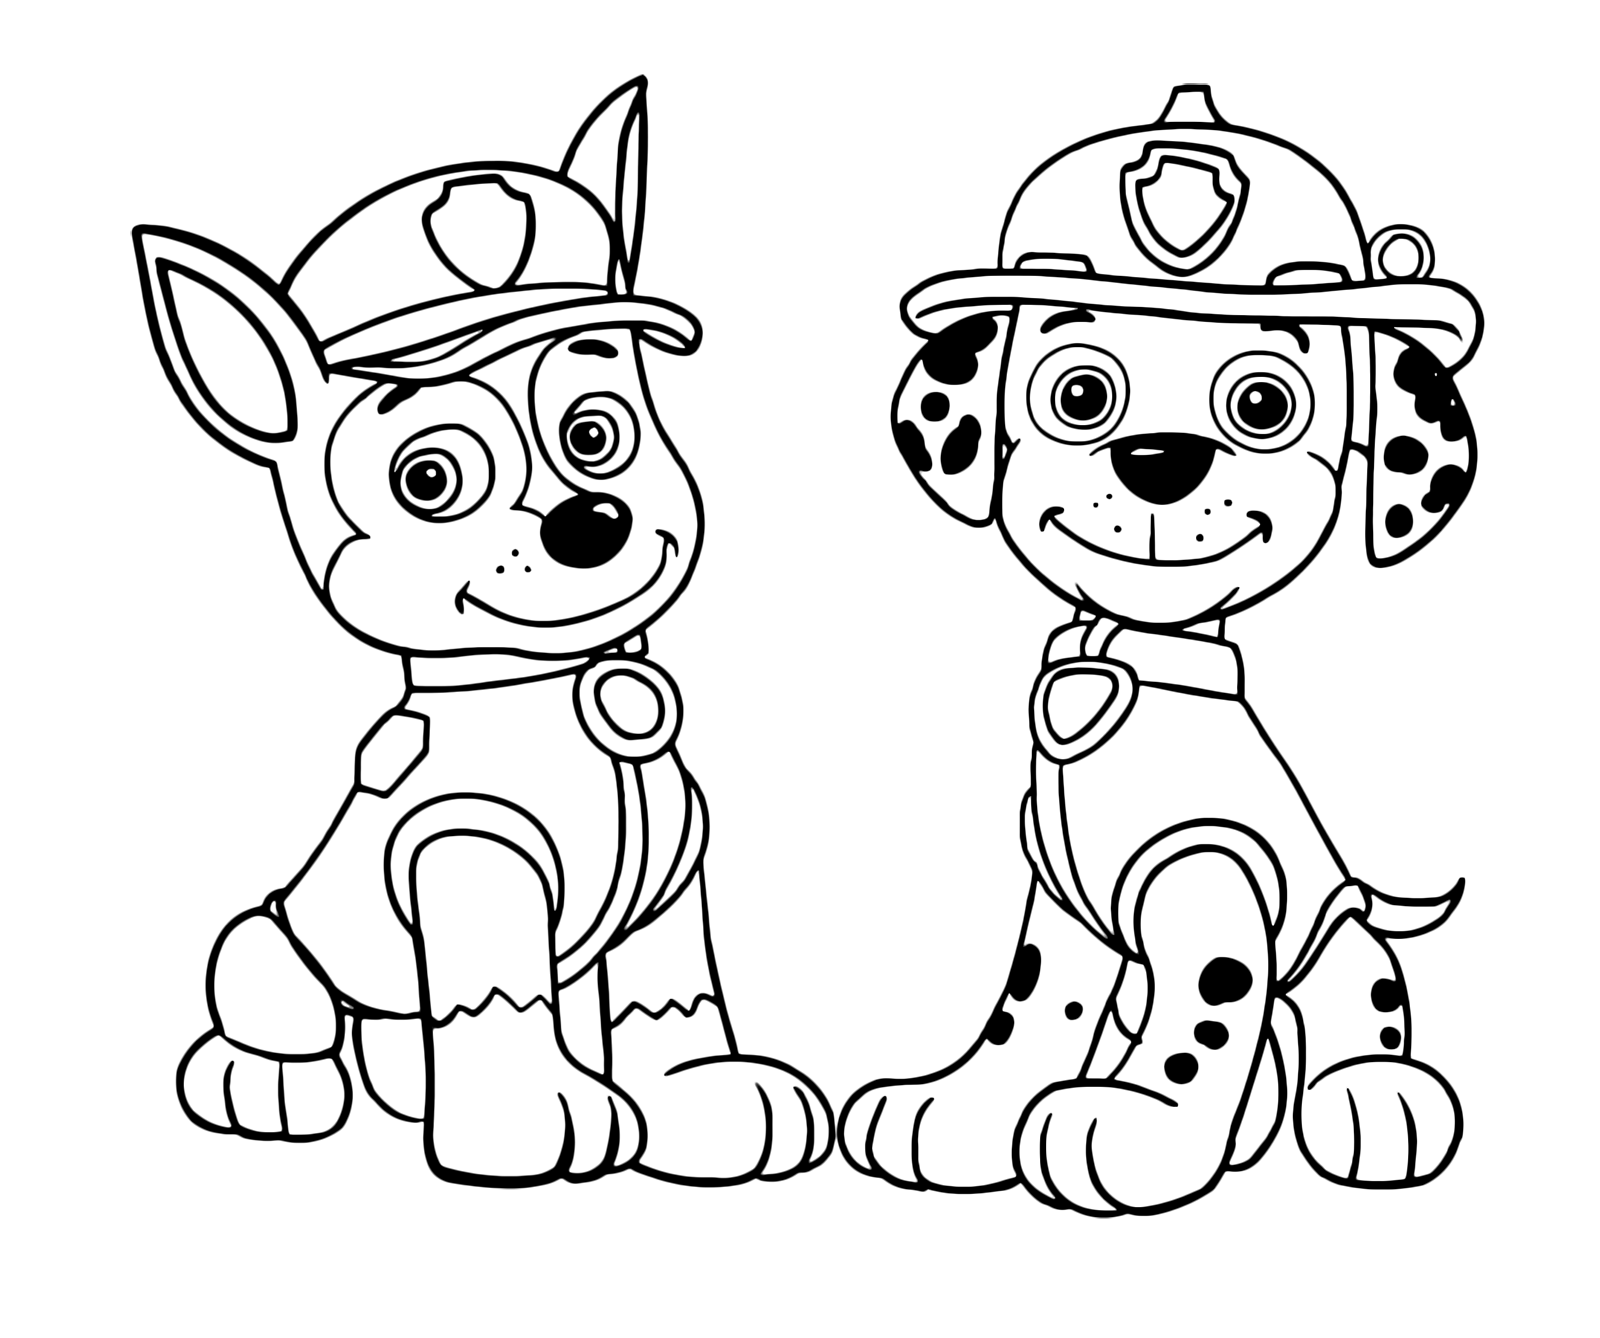 marshall from paw patrol marshall from paw patrol free colouring pages from patrol marshall paw